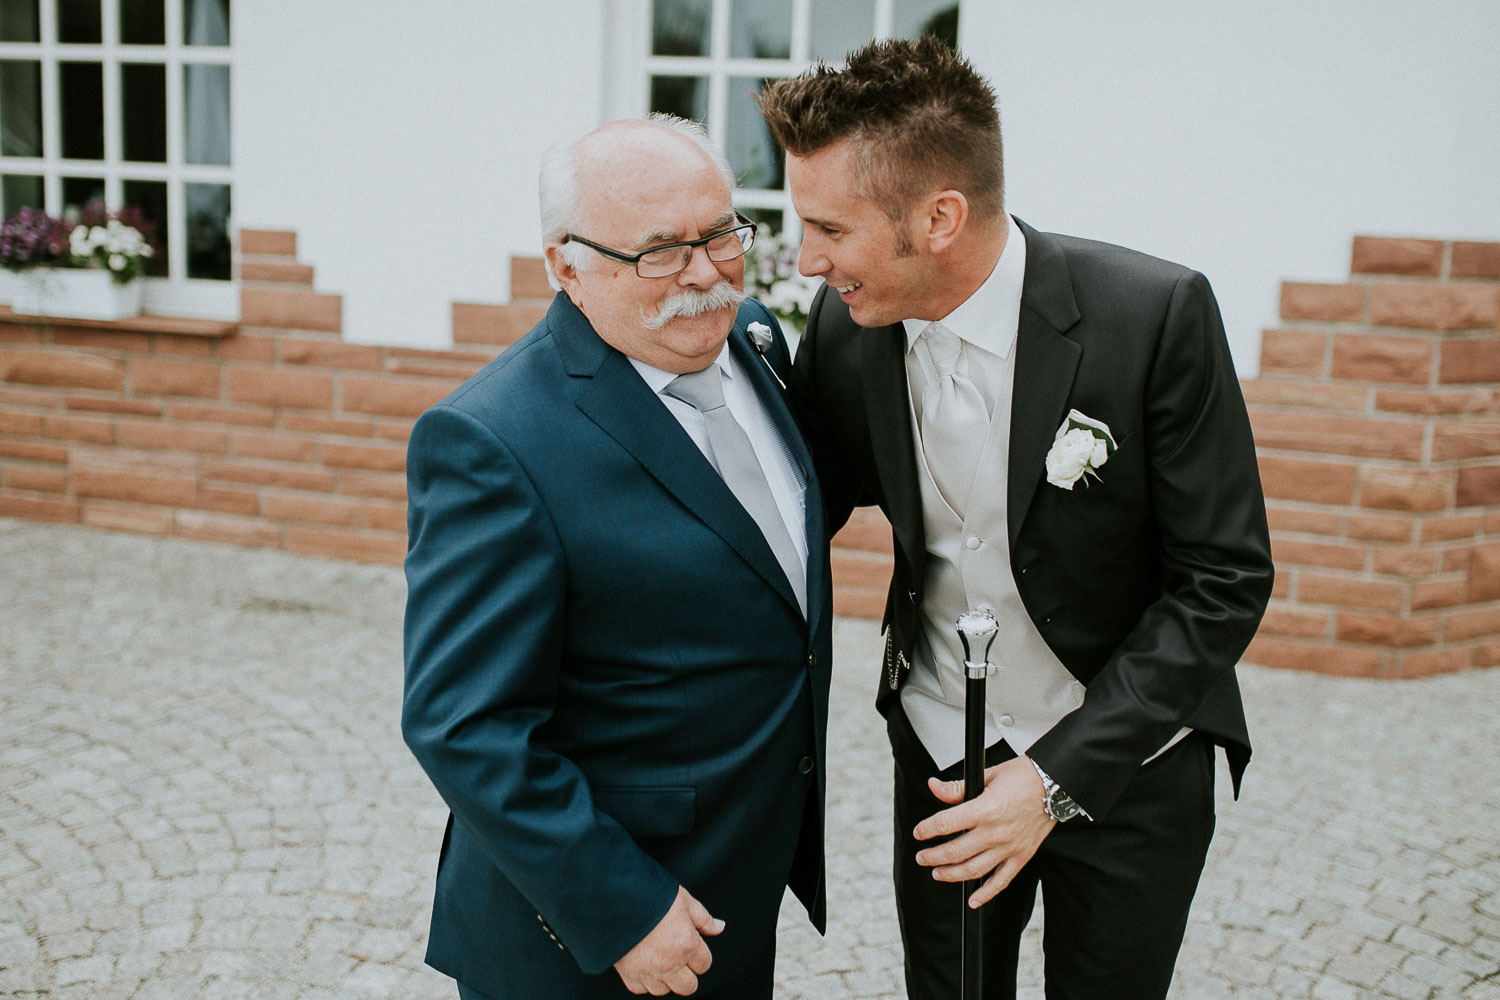 Hoher Darsberg wedding location - wedding photographer